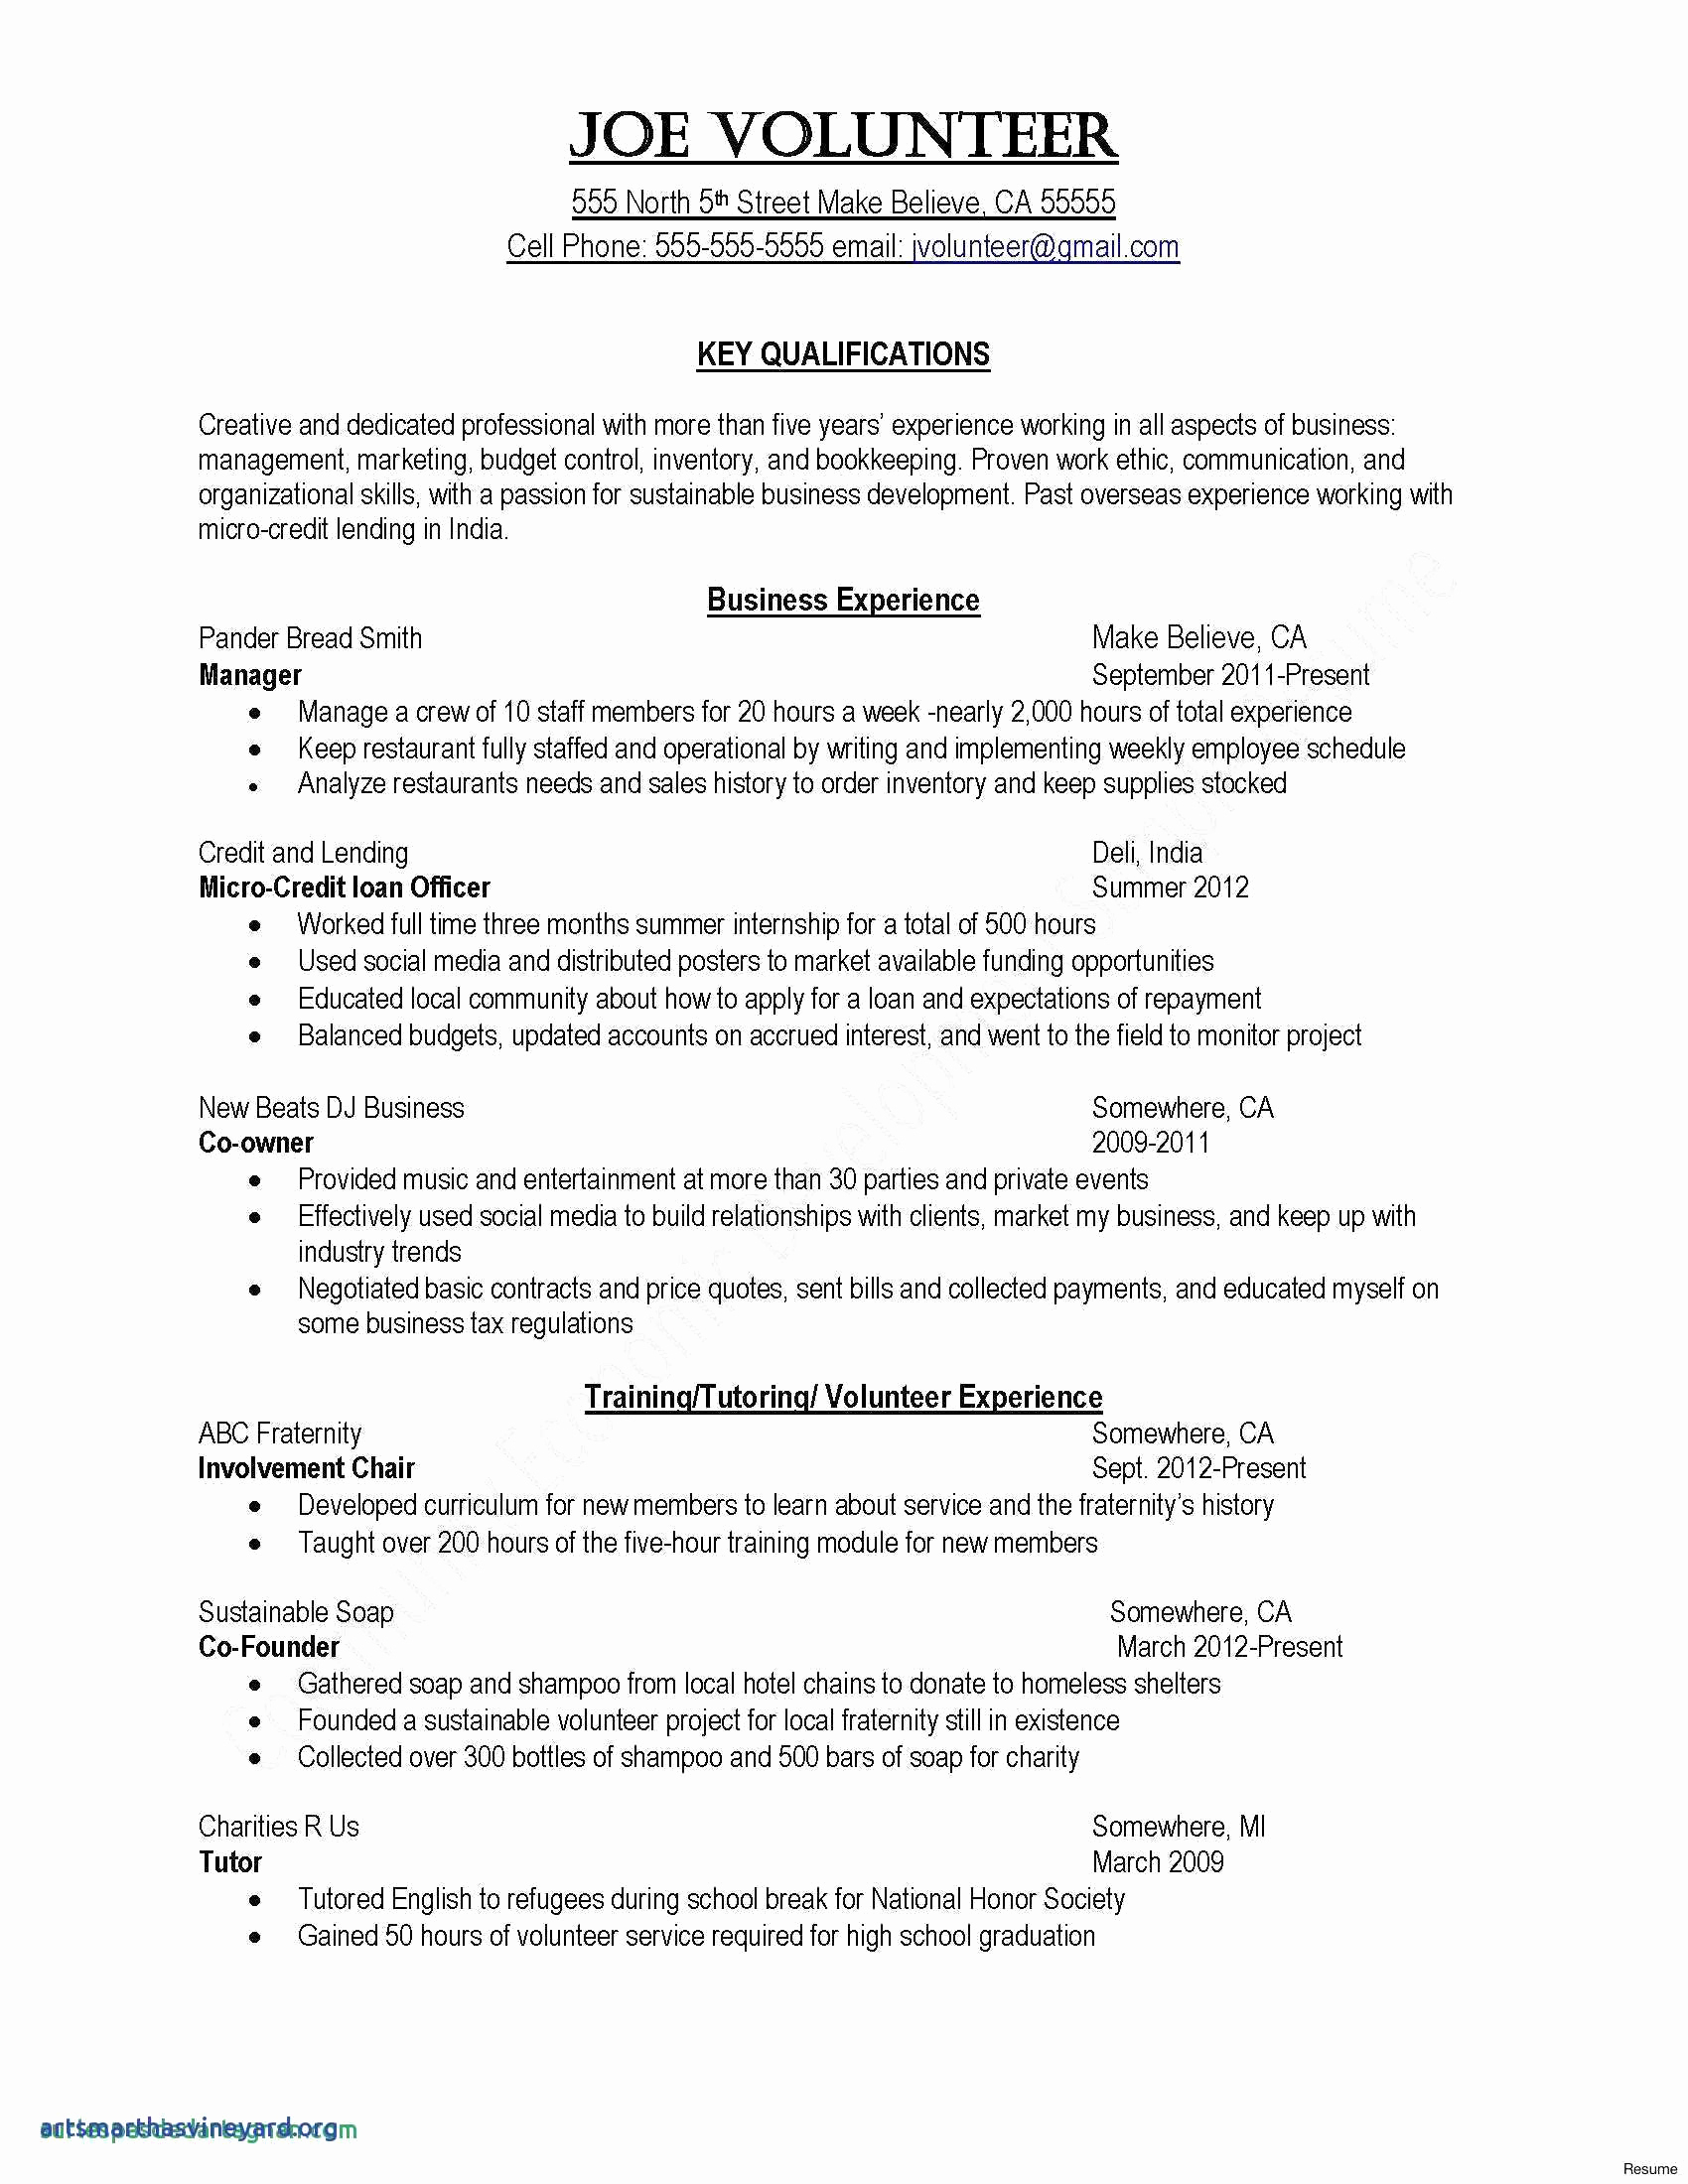 Fishing Log Spreadsheet Intended For Employee Training Log Template Fresh Weightlifting Excel Spreadsheet